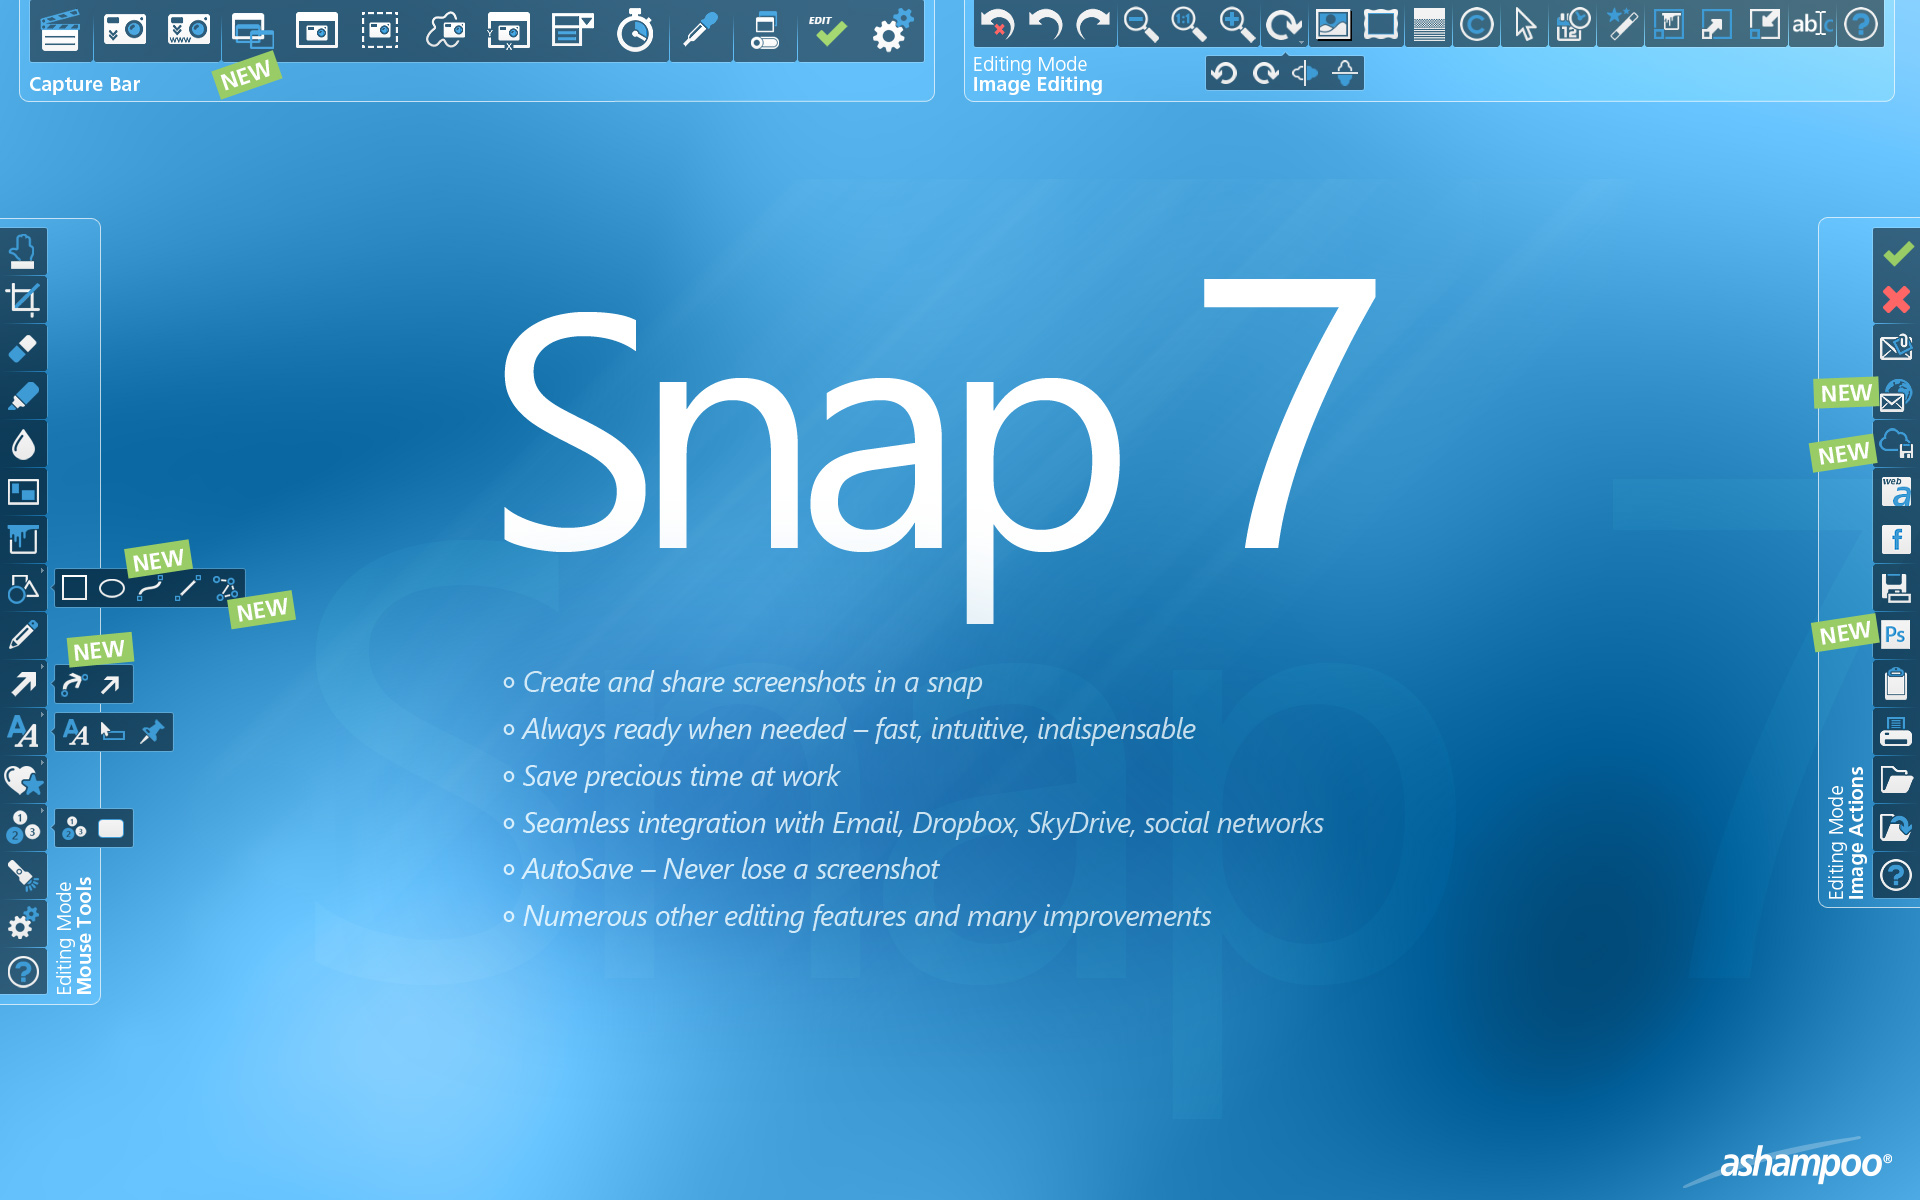 Click to view Ashampoo Snap 7.0.8 screenshot